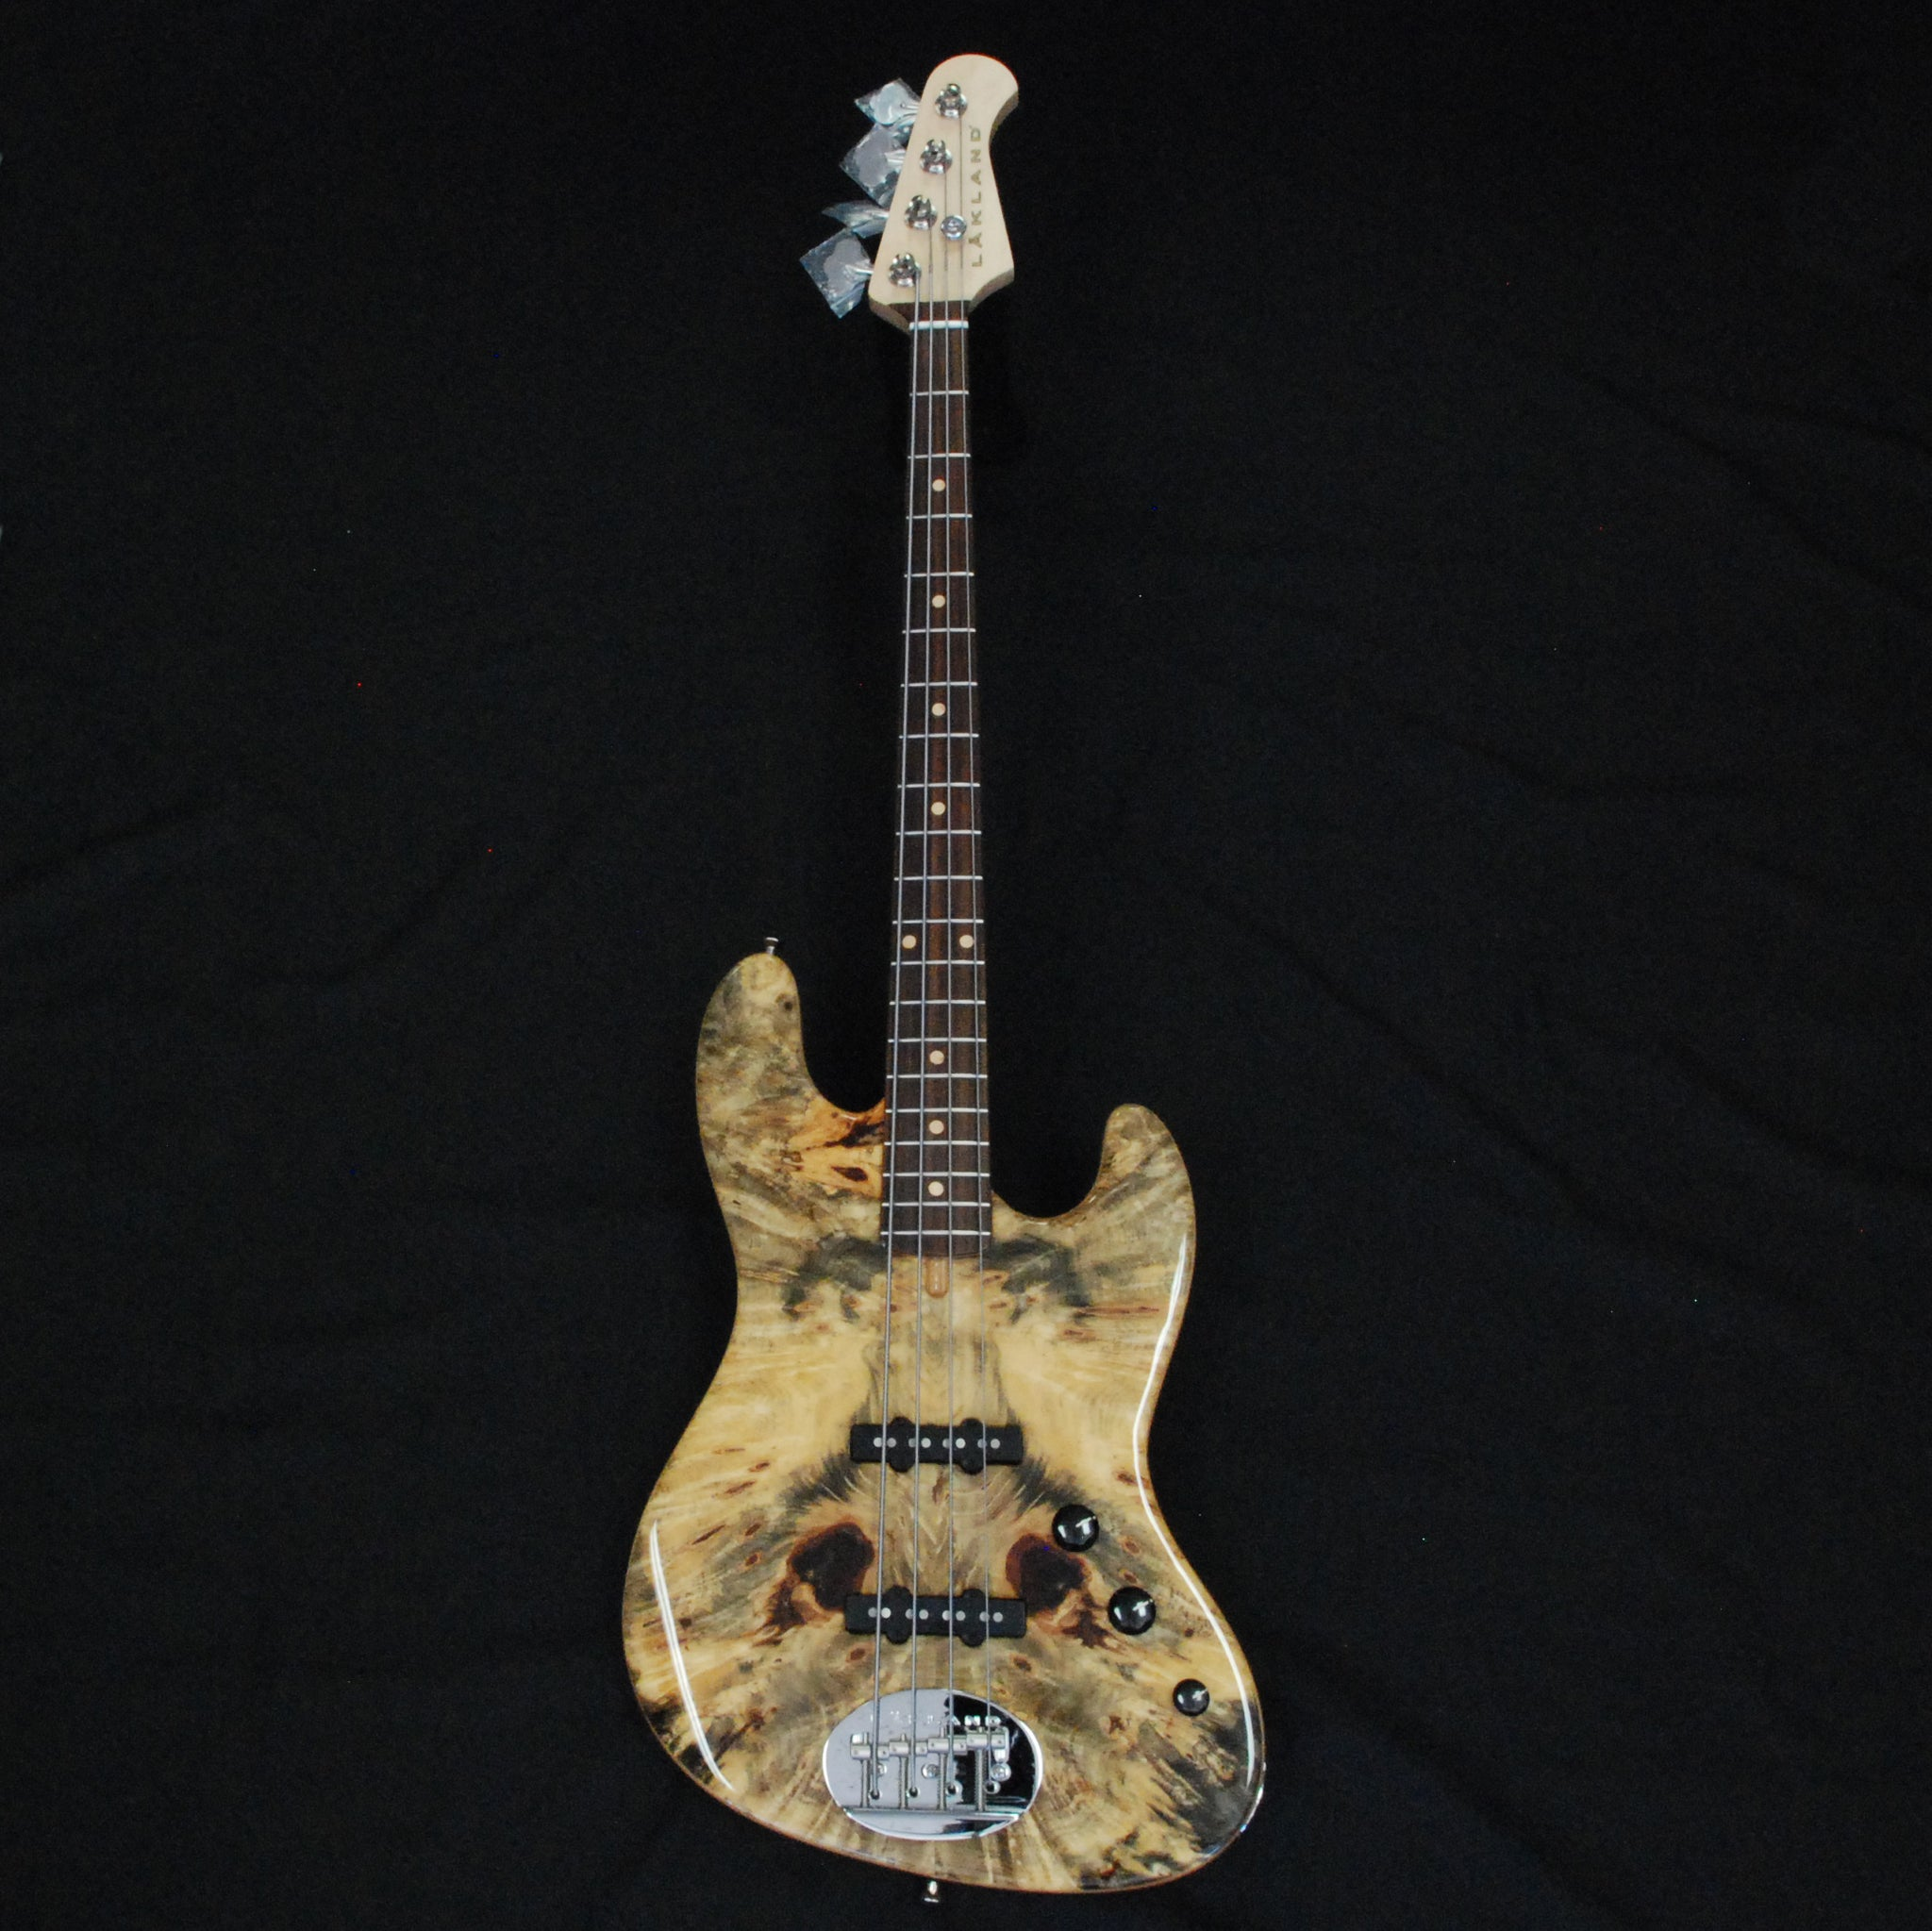 Shop online for Lakland USA Classic Series 44-60 Deluxe Buckeye Burl Maple 4 String Electric Jazz Bass Guitar today.  Now available for purchase from Midlothian Music of Orland Park, Illinois, USA